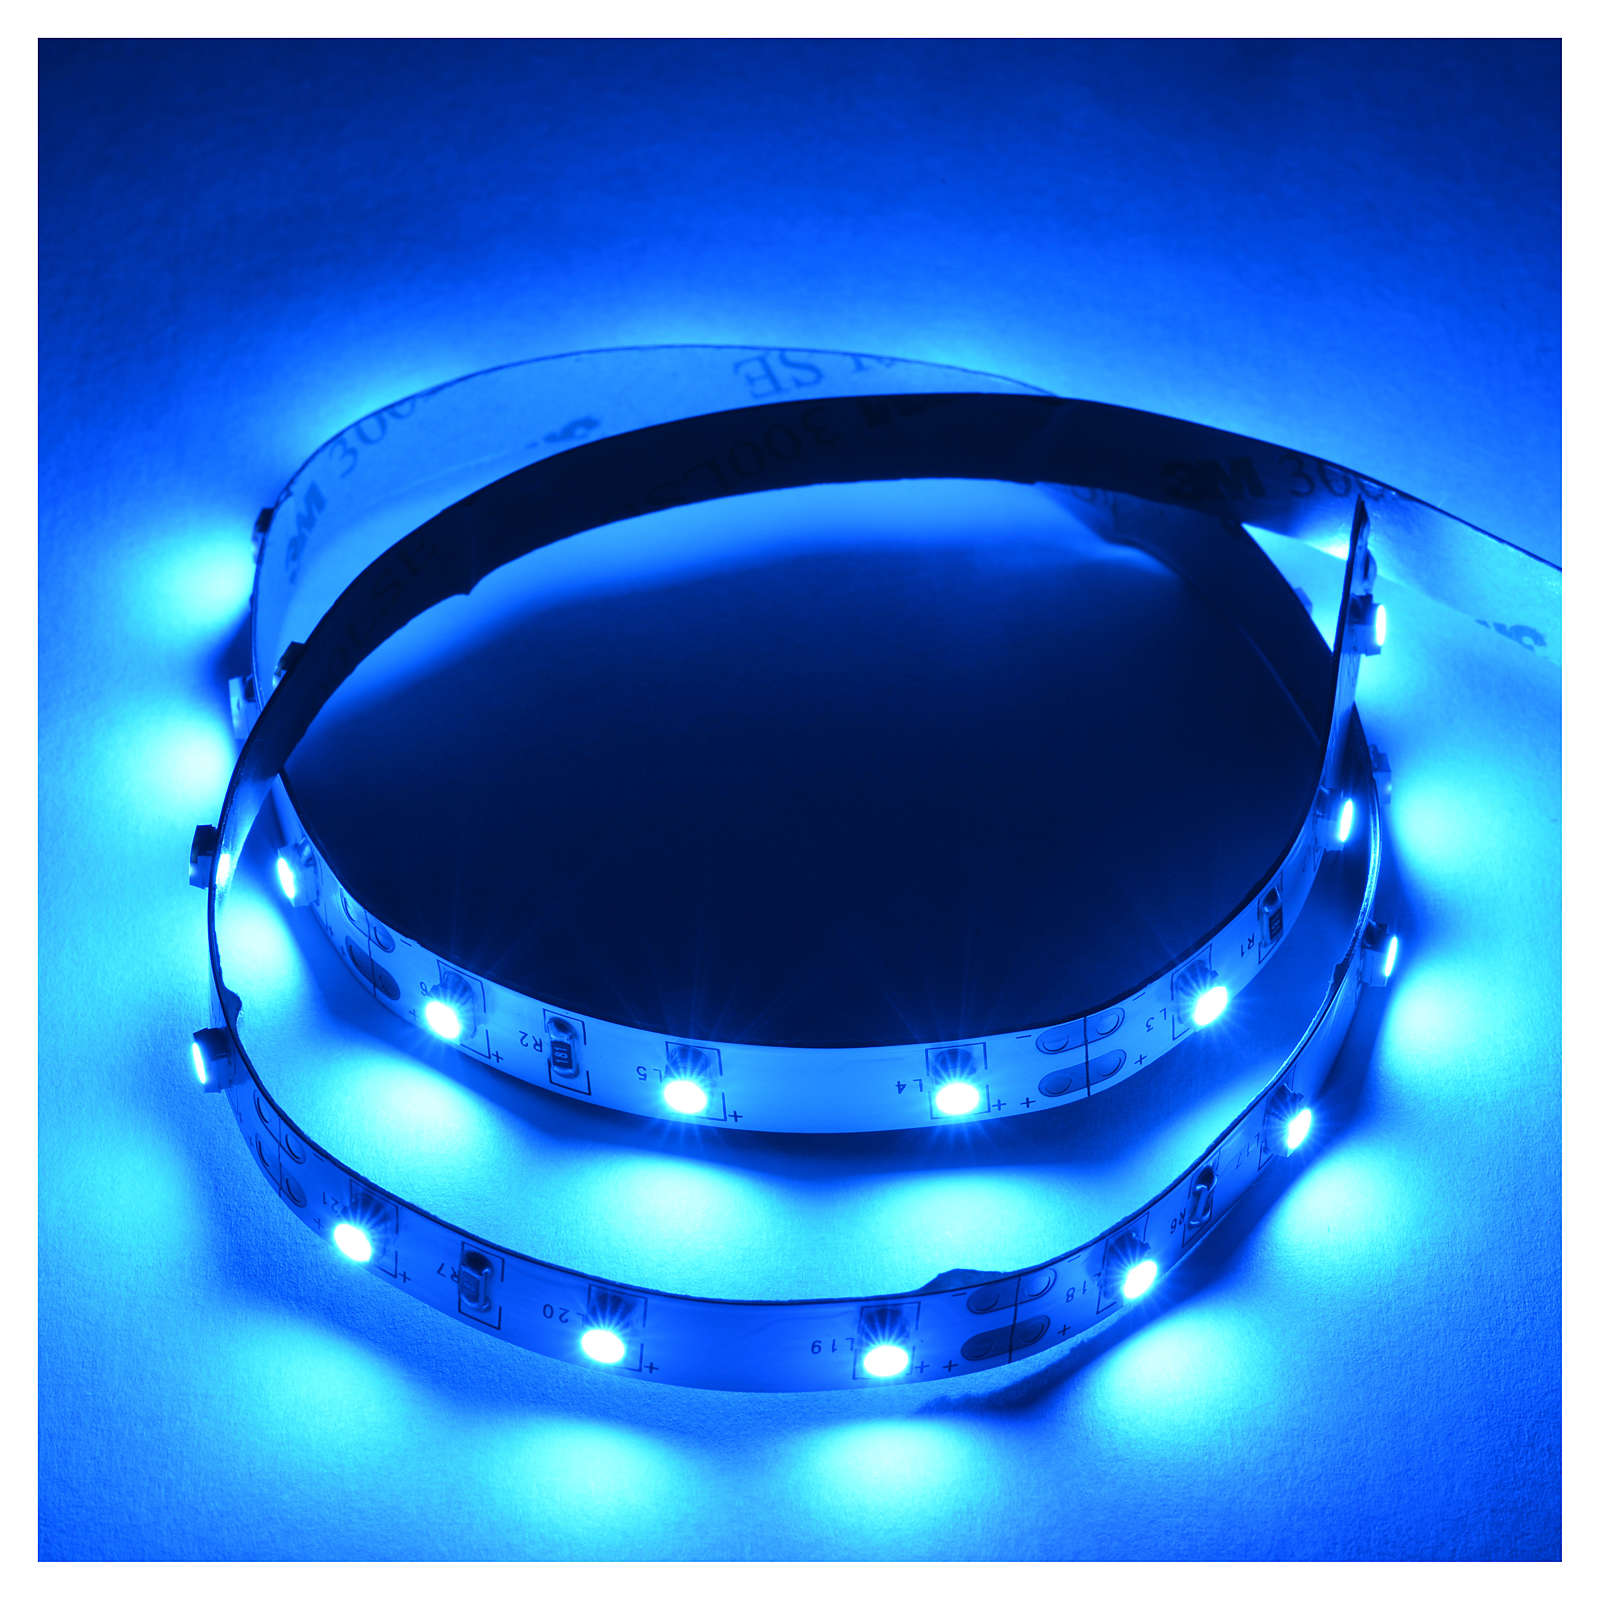 Tira de LED Power 'PS' 30 LED 0.8 x 50 cm. azul Frial Power 4